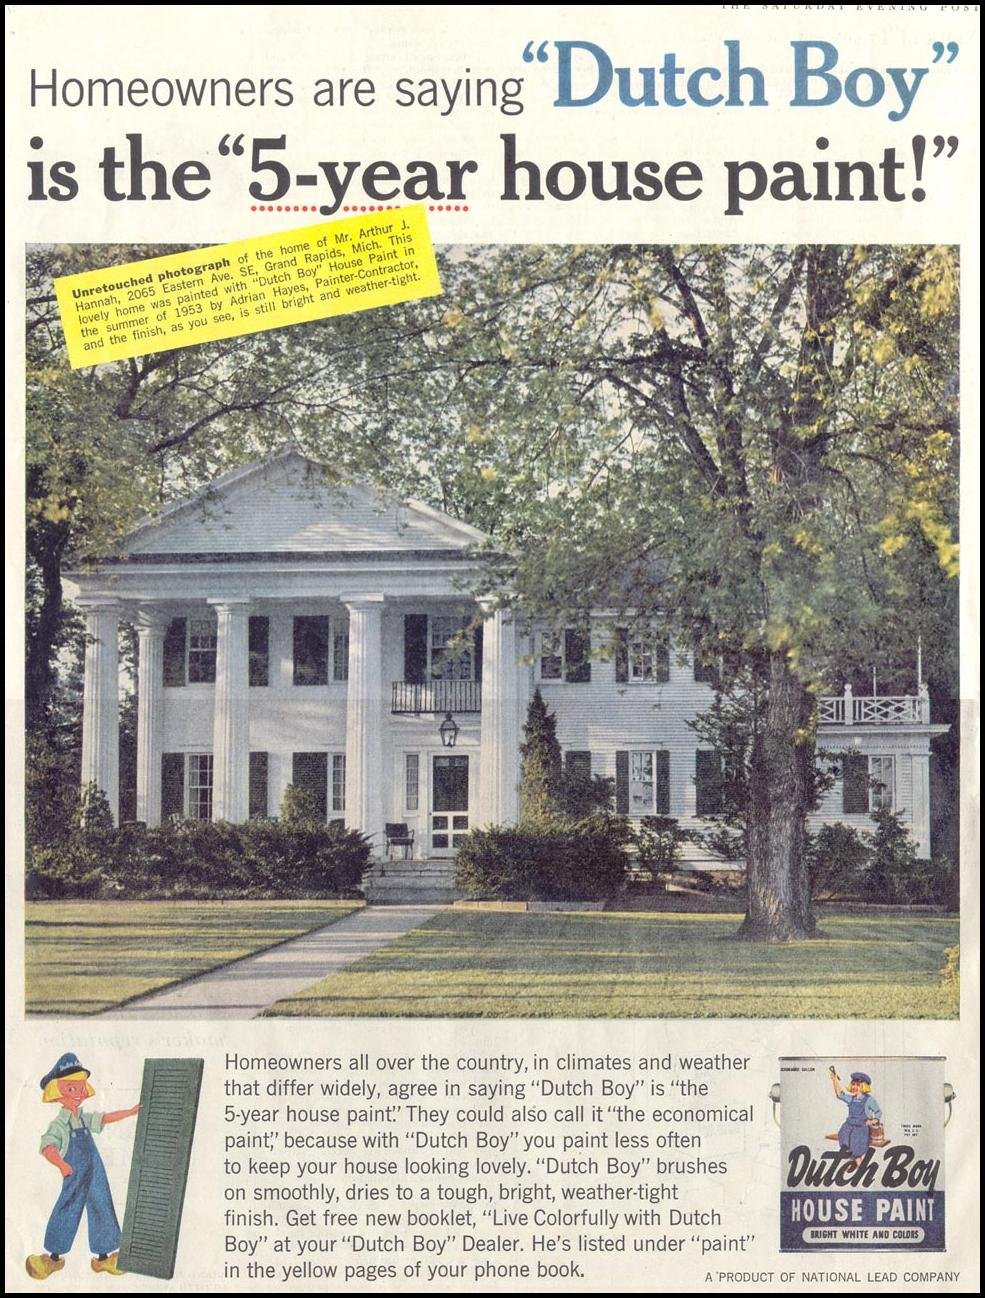 DUTCH BOY HOUSE PAINT SATURDAY EVENING POST 08/15/1959 p. 90